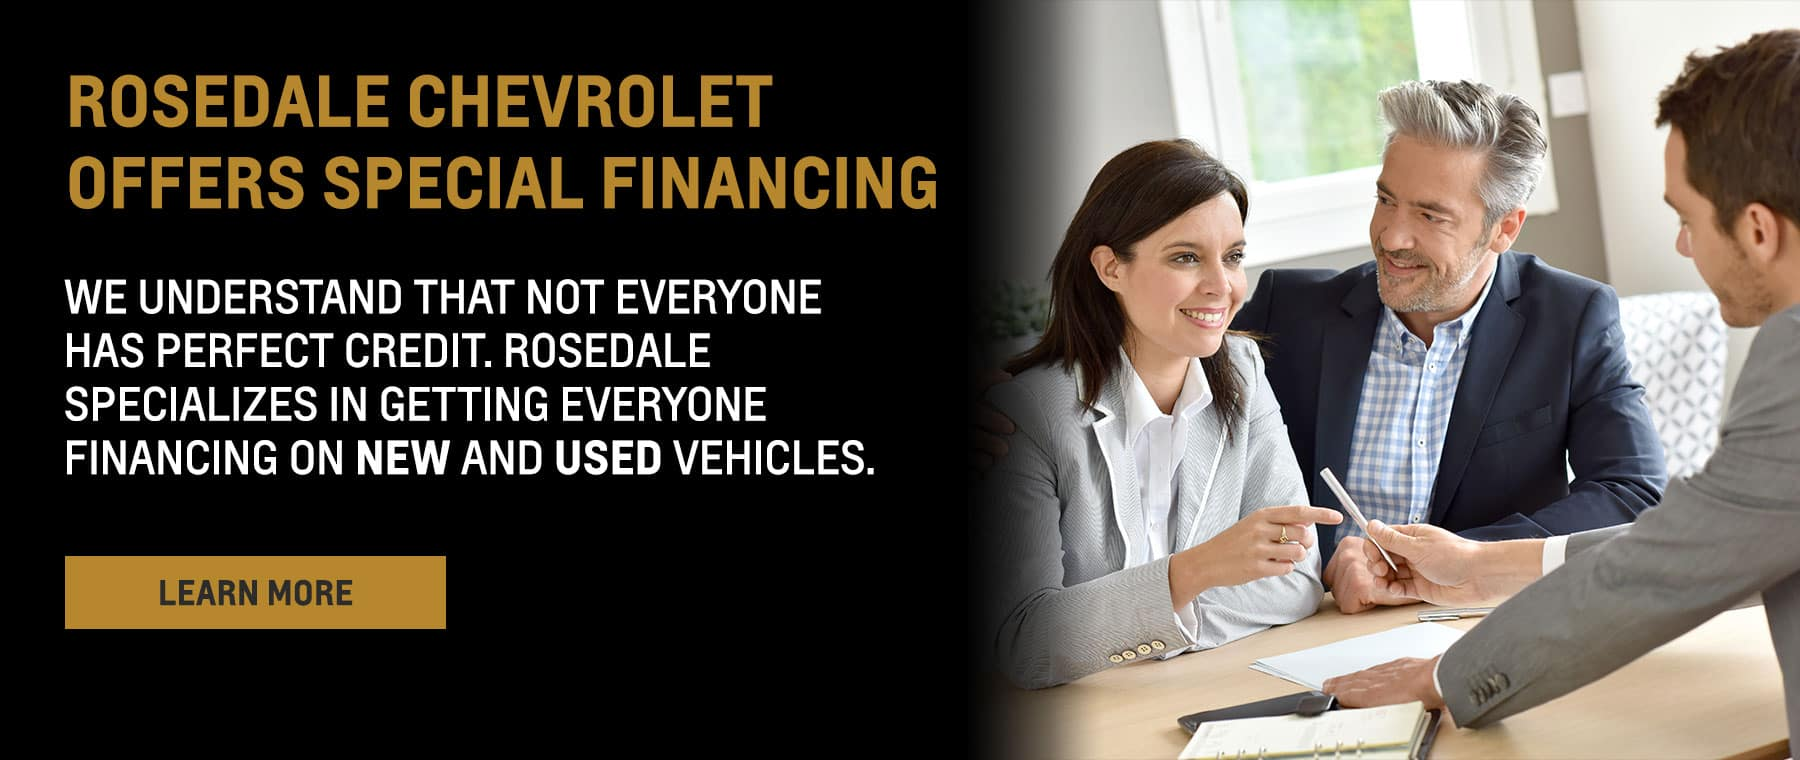 Rosedale Chevrolet Offers Special Financing. We understand that not everyone has perfect credit. Rosedale specializes in getting everyone financing on NEW and USED vehicles.